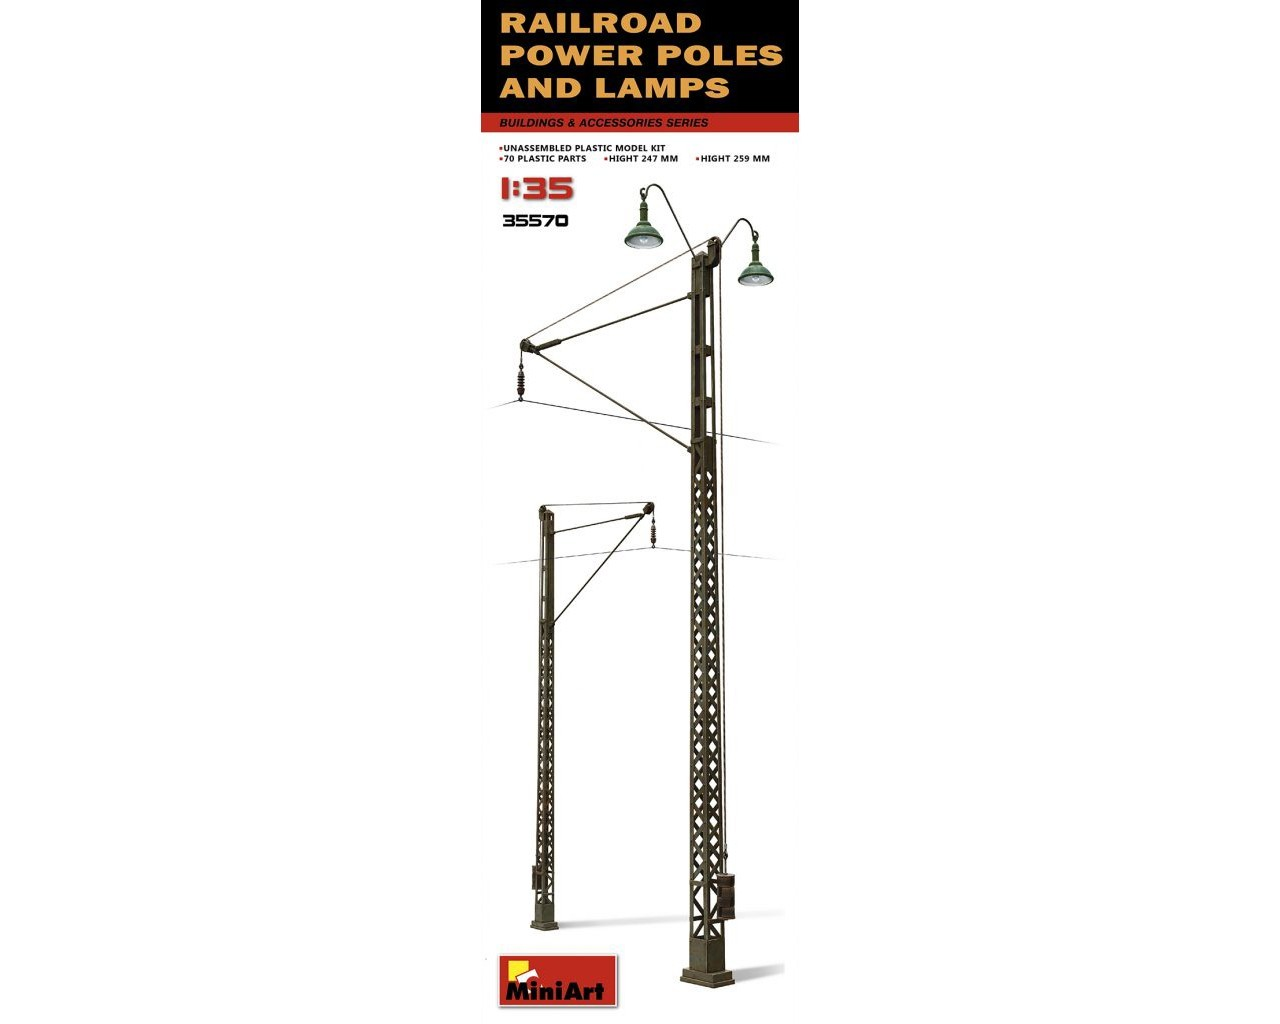 1/35 Railroad Power Poles and Lamps